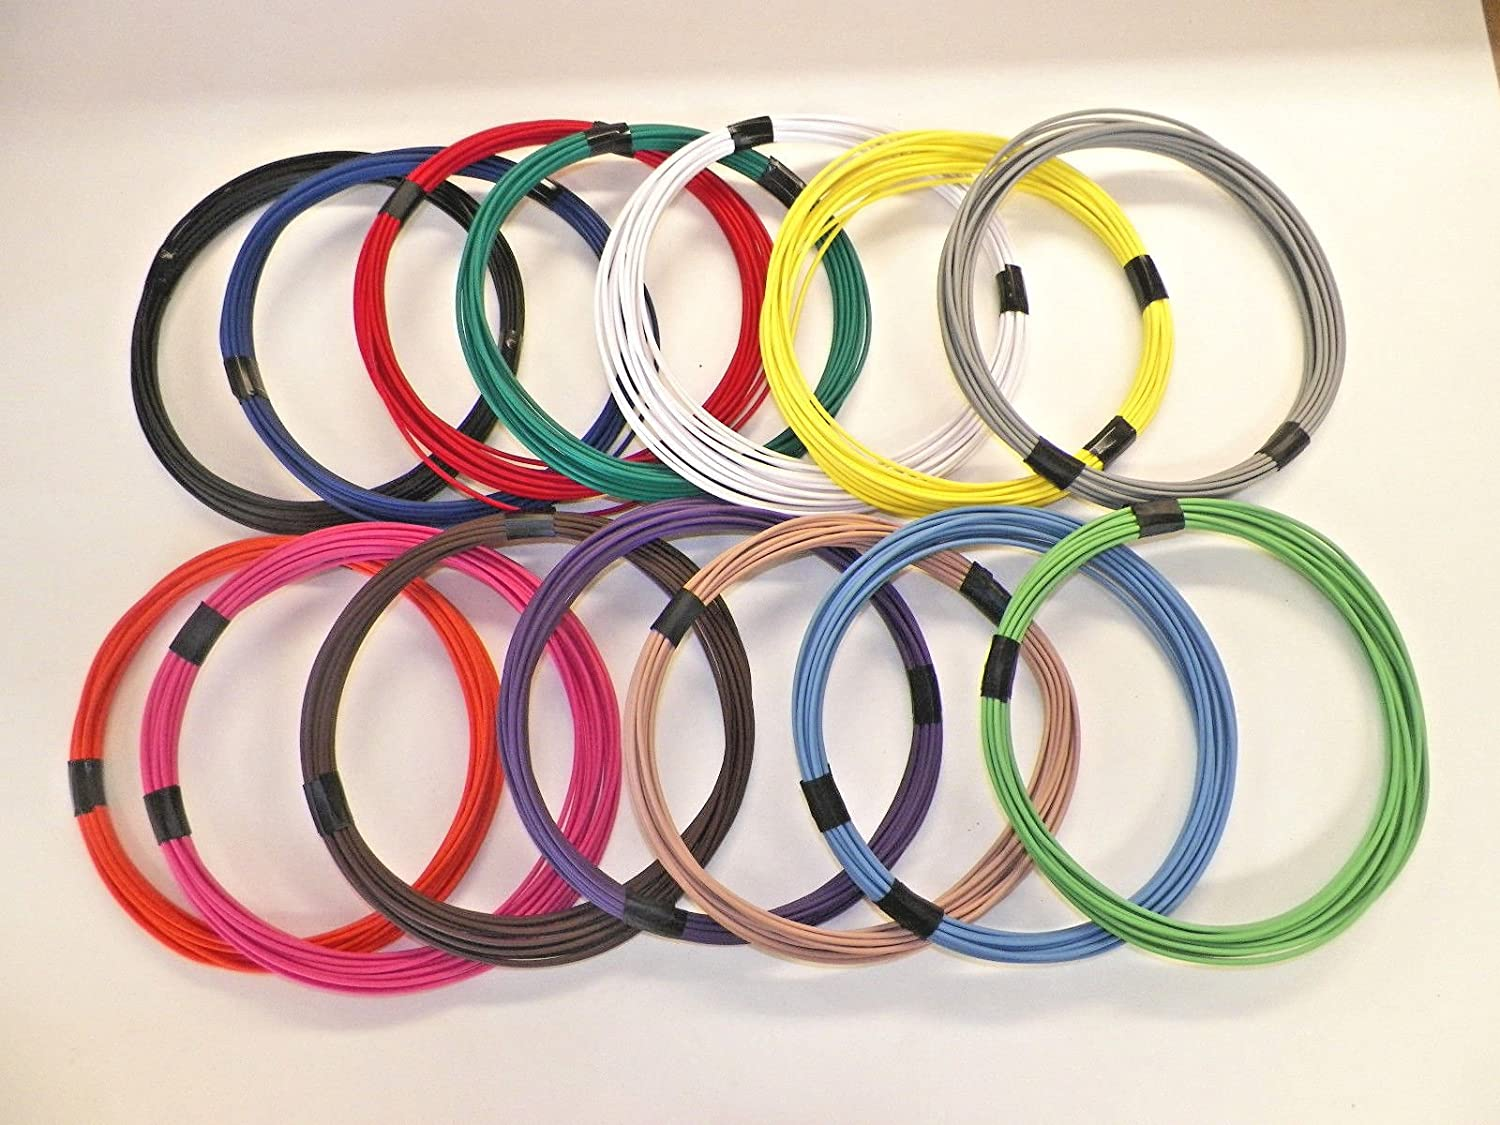 18 GXL HIGH TEMP 12 SOLID COLORS 25 FEET EACH 300 FEET TOTAL AUTOMOTIVE WIRE